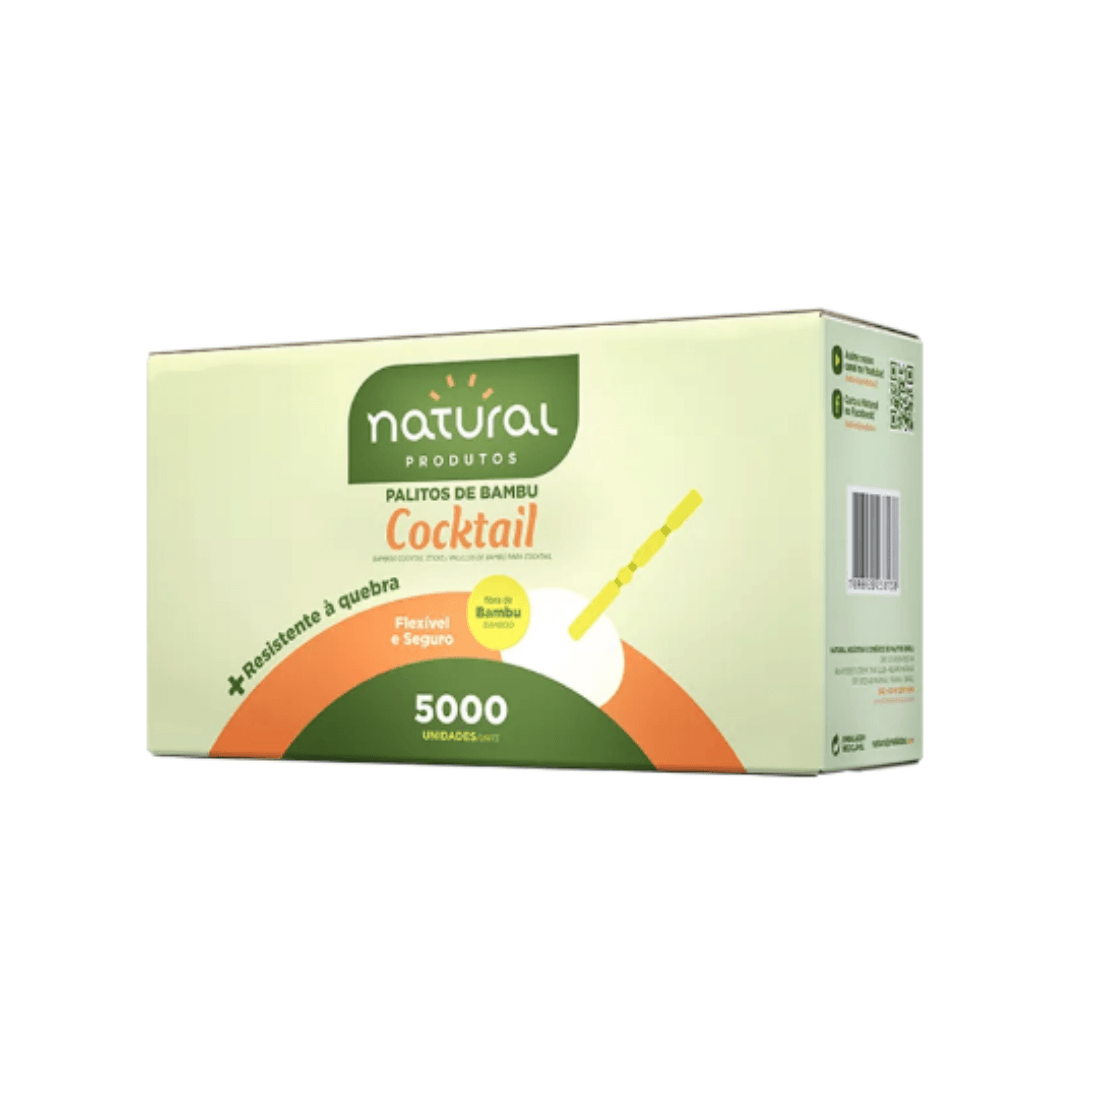 PALITO COCKTAIL BAMBU NATURAL CAIXA 5000 UNIDADES